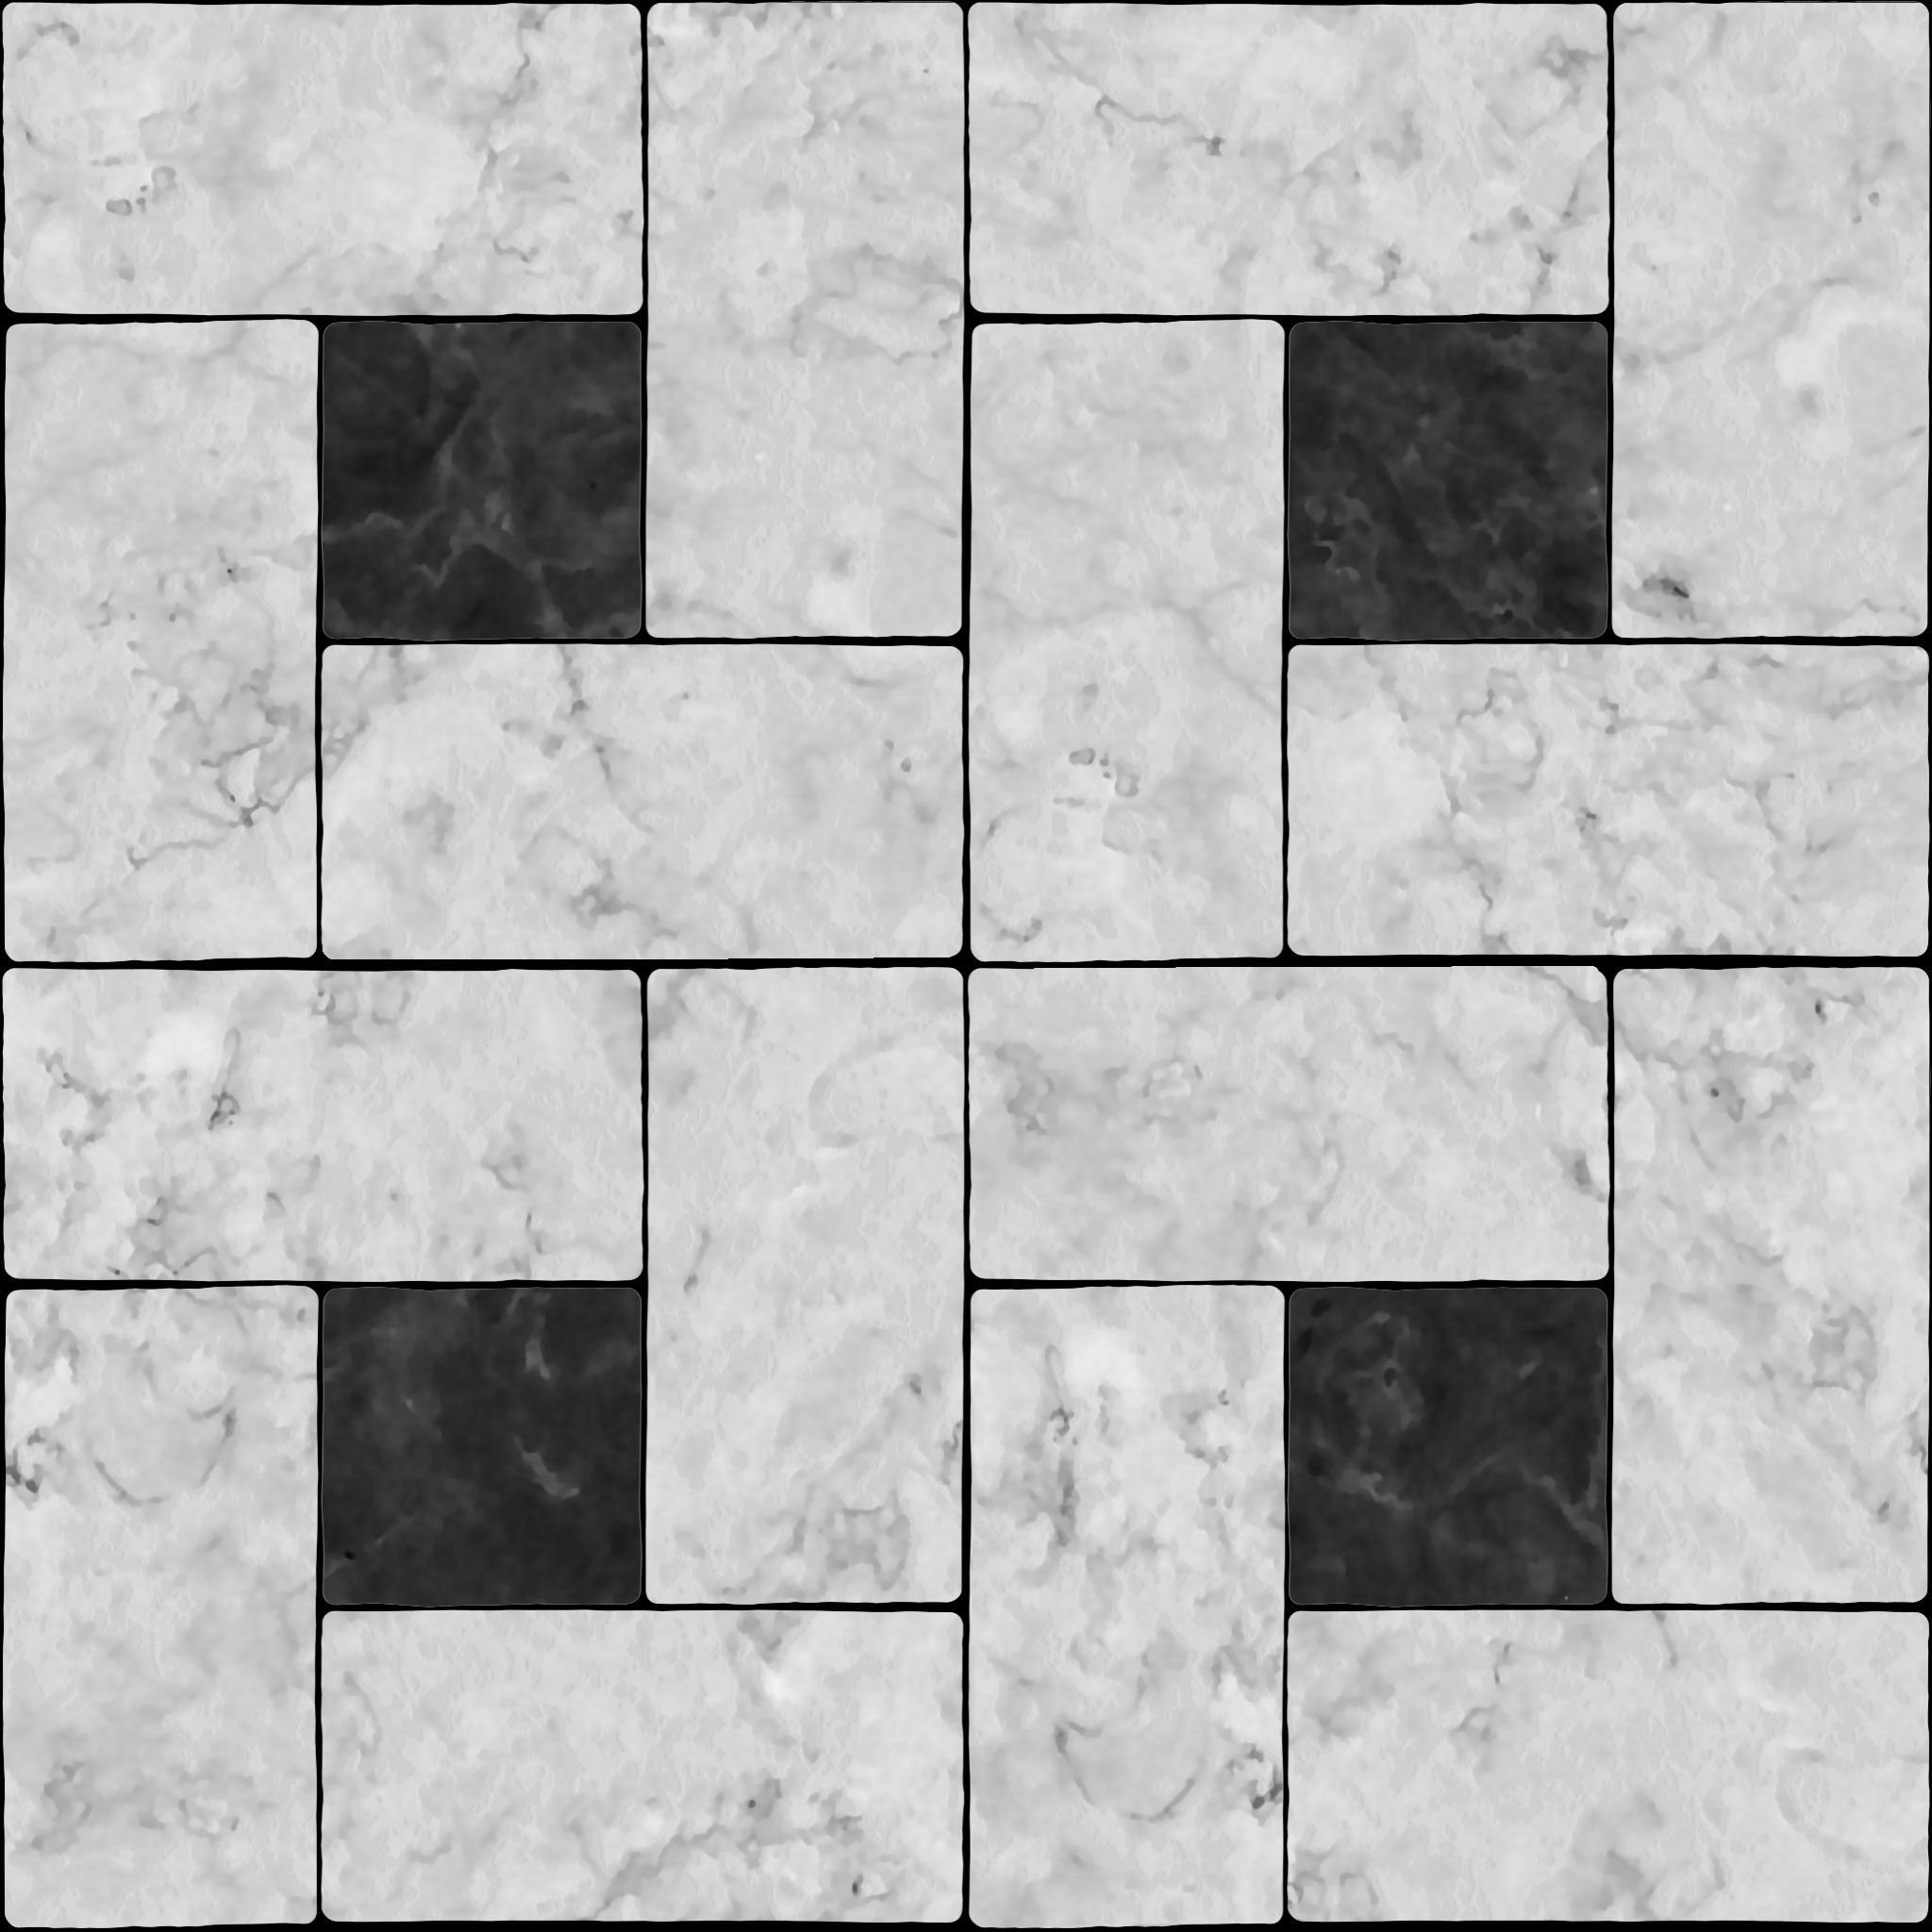 Pin modern tile floor texture simple textured bathroom on pinterest - Tile Flooring Texture 2048 X 2048 Resolution